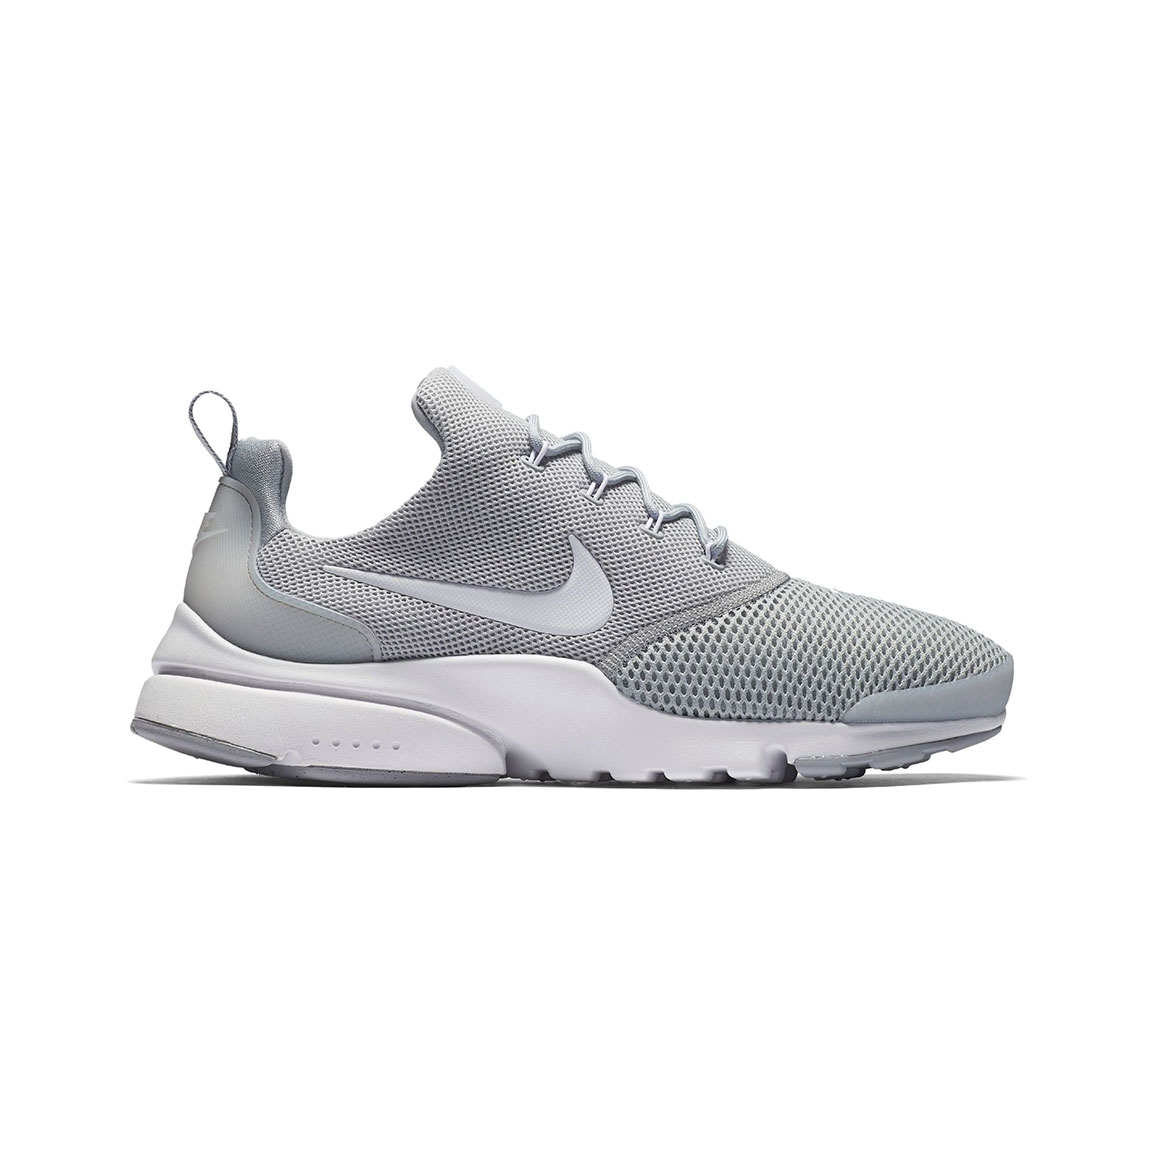 Men's Nike Presto Fly Lifestyle Shoe - Color: Wolf Grey/White/Wolf Gre.